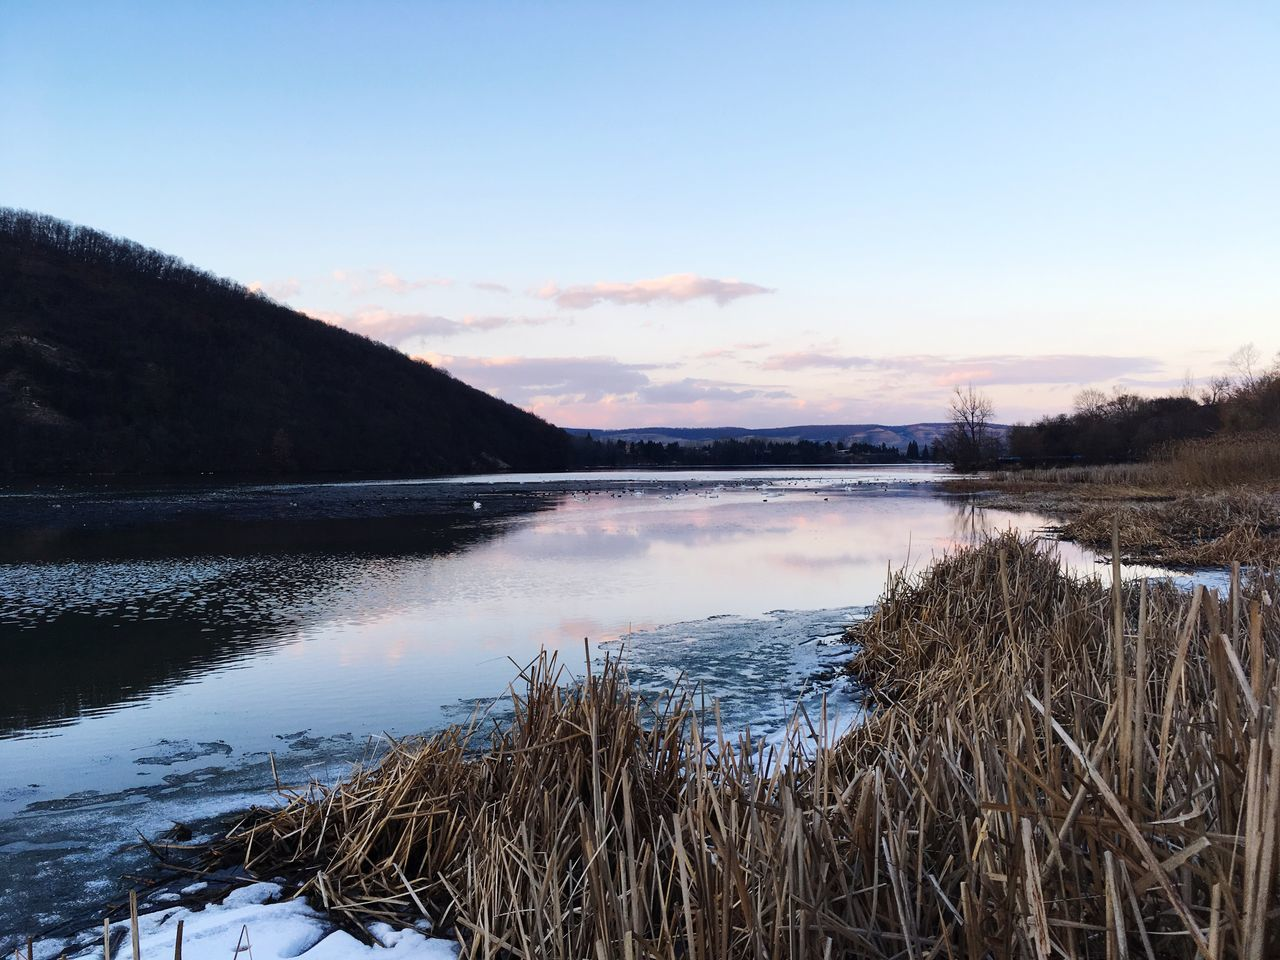 nature, tranquil scene, tranquility, scenics, water, beauty in nature, sky, outdoors, no people, lake, winter, mountain, snow, day, cold temperature, sunset, landscape, tree